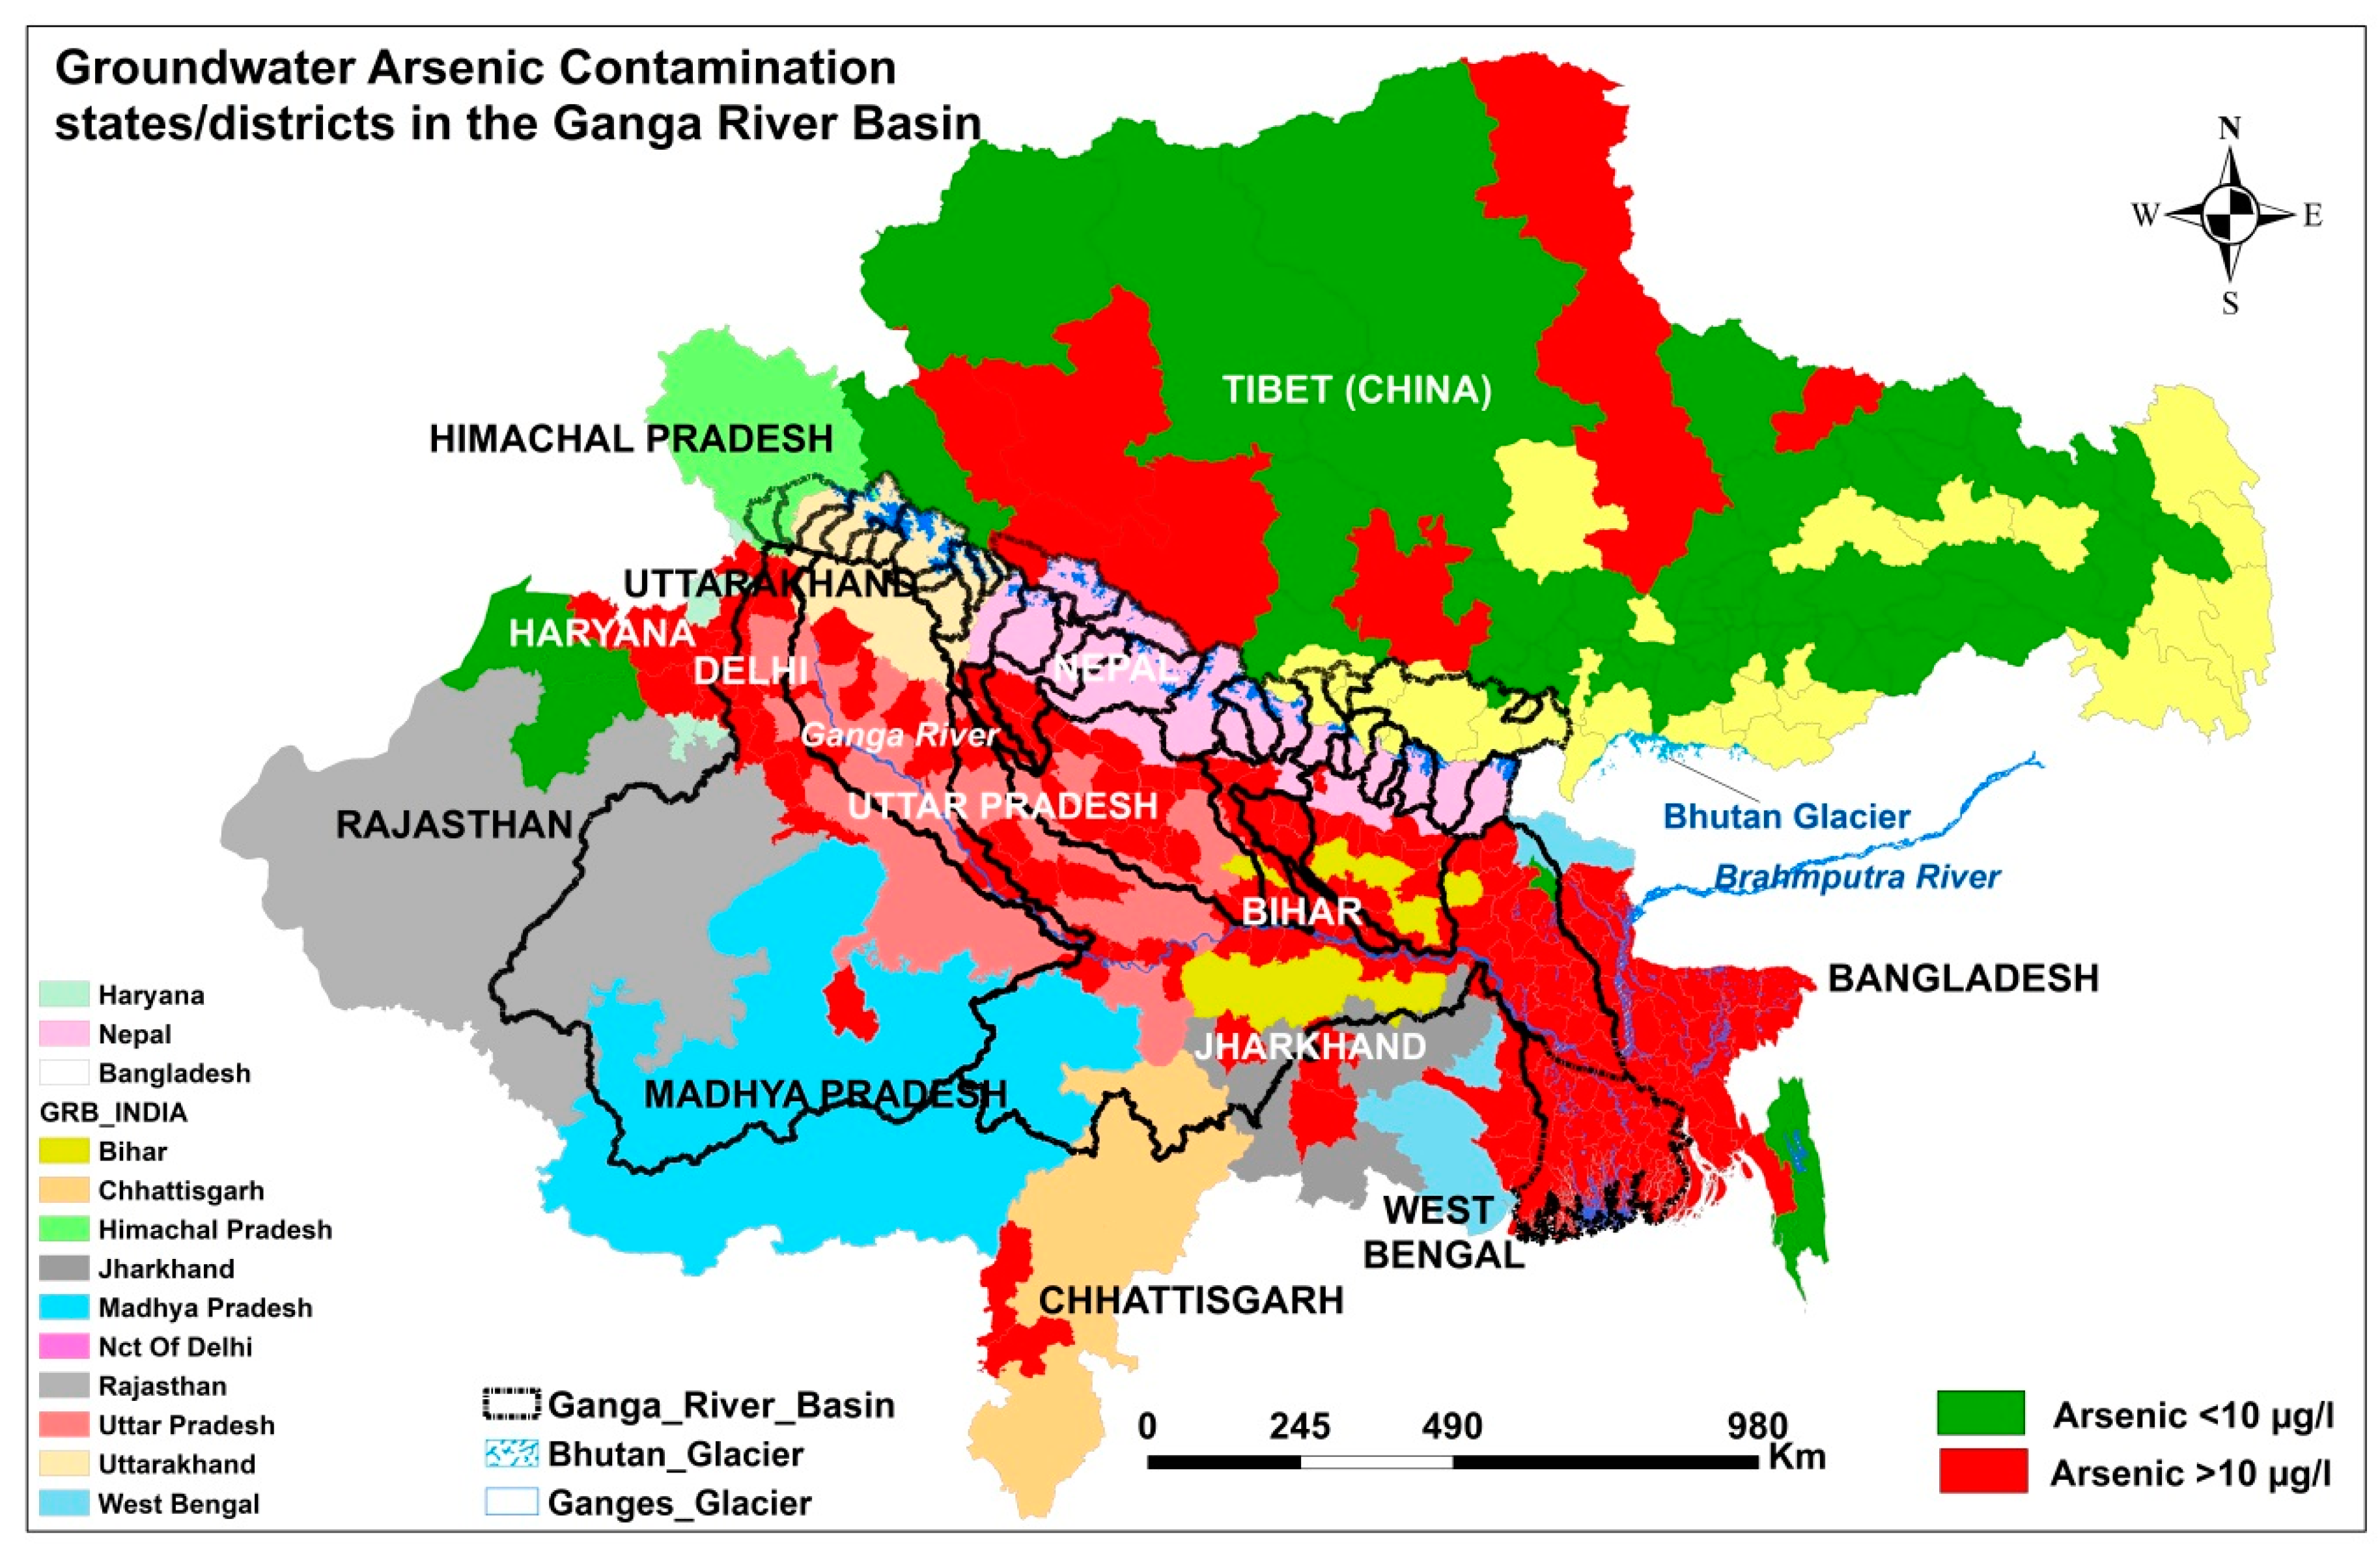 Groundwater arsenic contamination in Bangladesh and West Bengal, India.